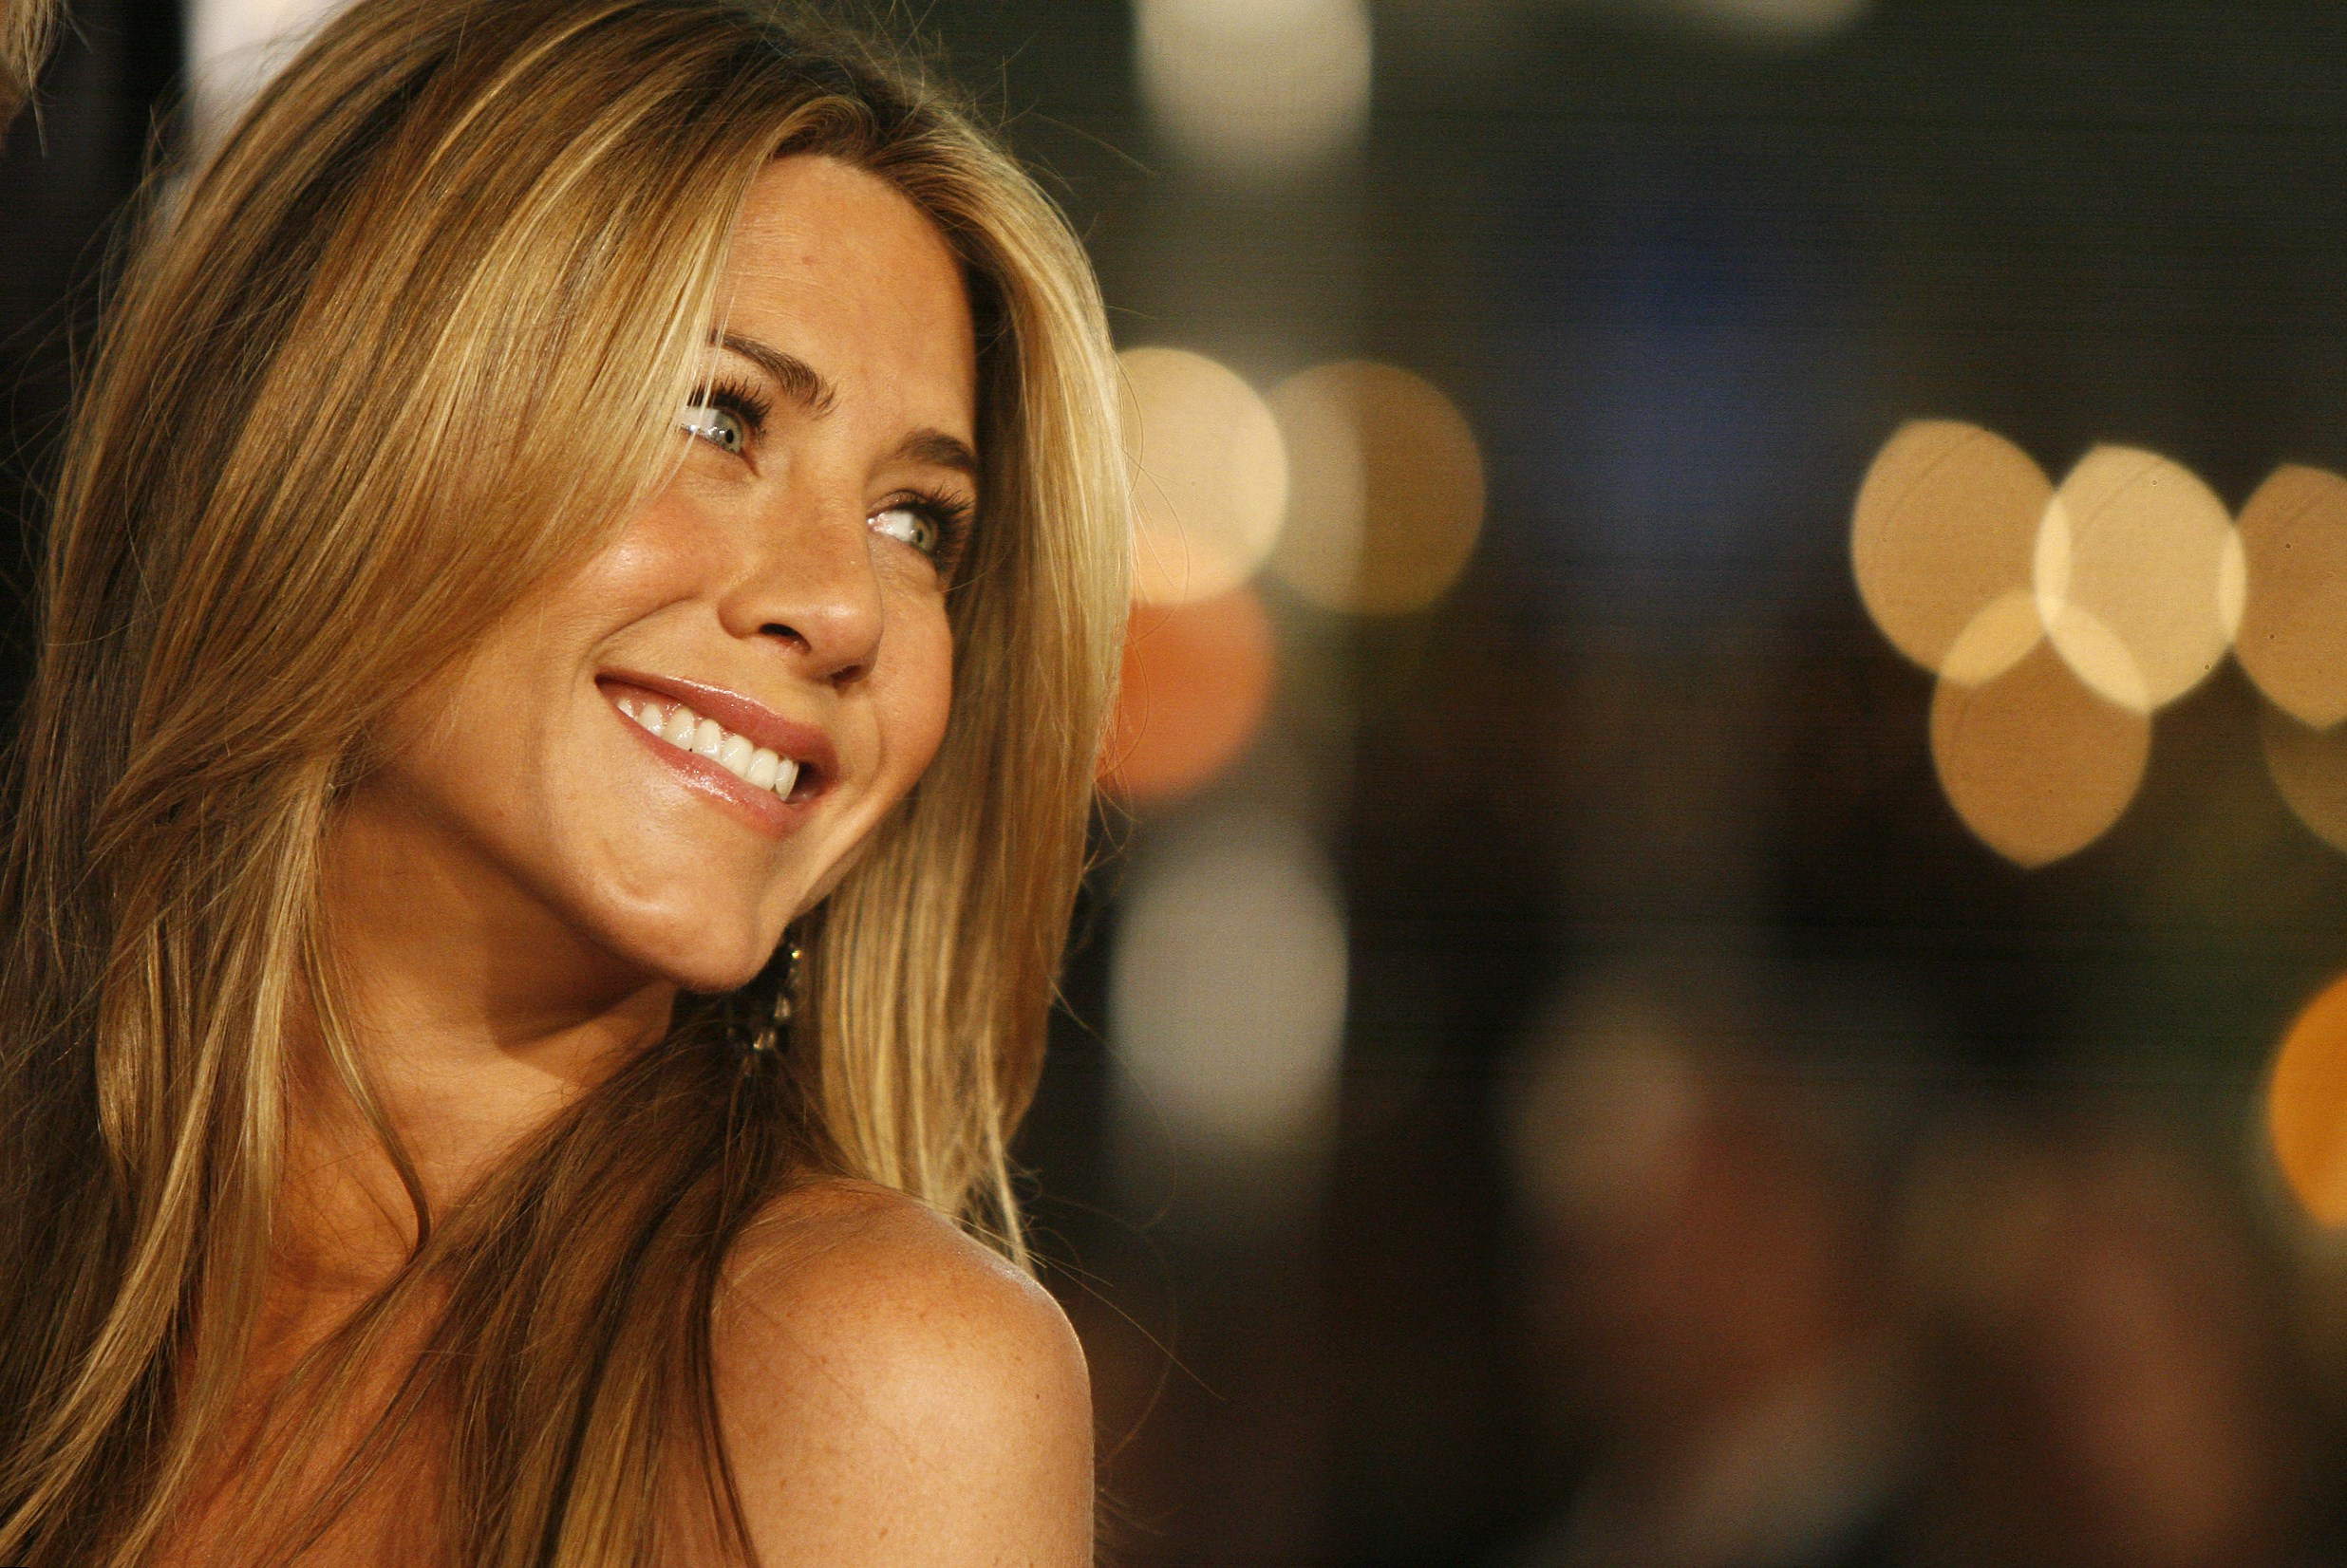 Jennifer Aniston Best Movies and TV Shows